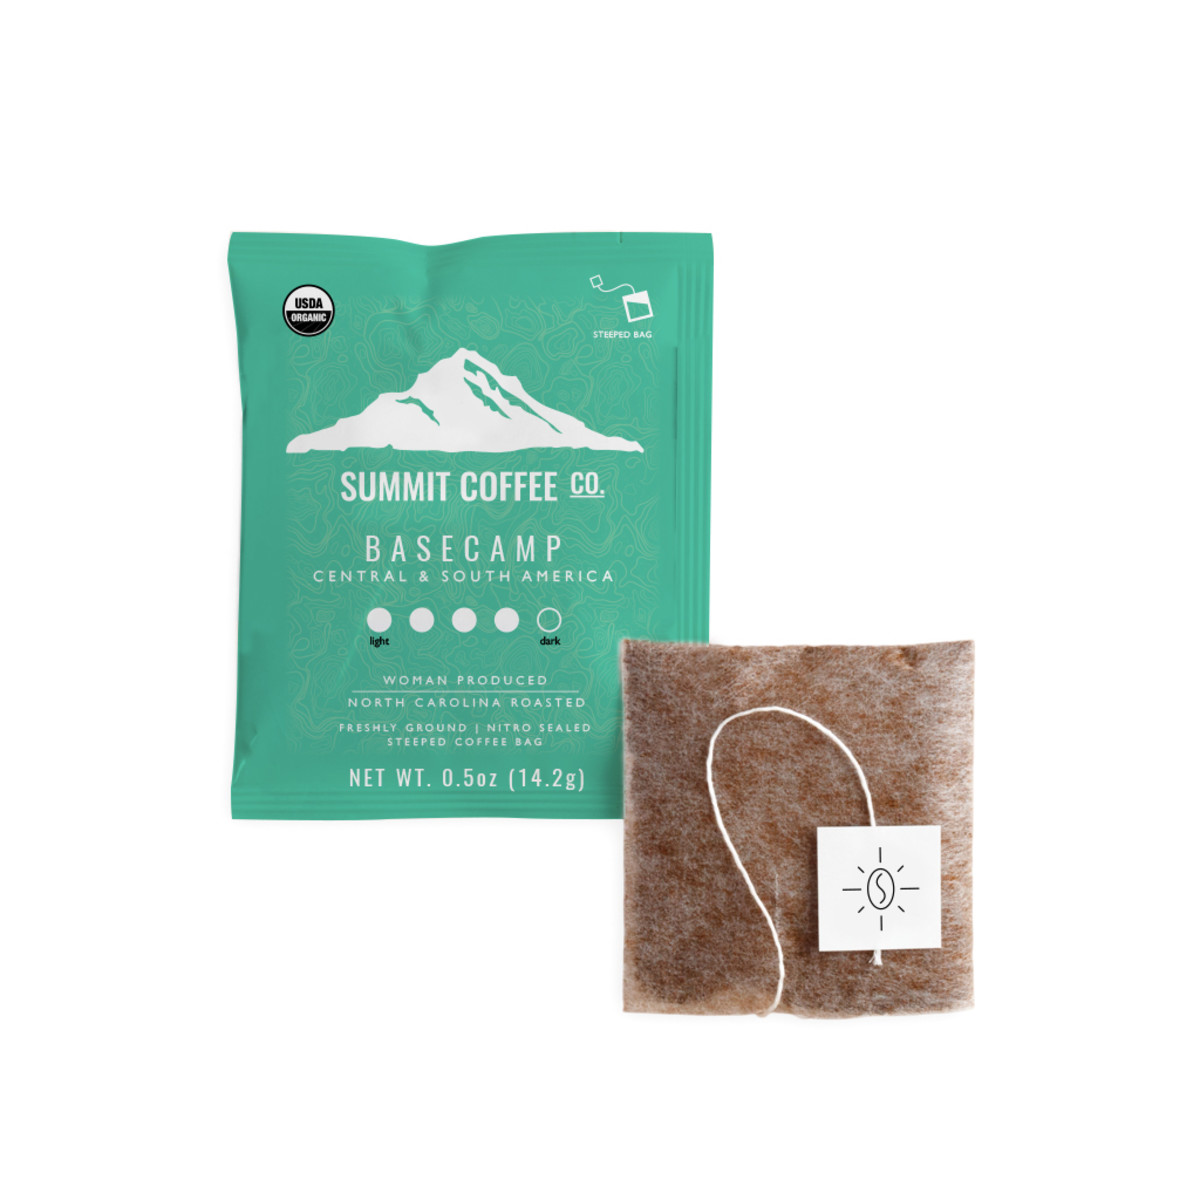 Meet the entirely compostable coffee bag and packaging from Summit Coffee Co. Dip, Steep, Compost!